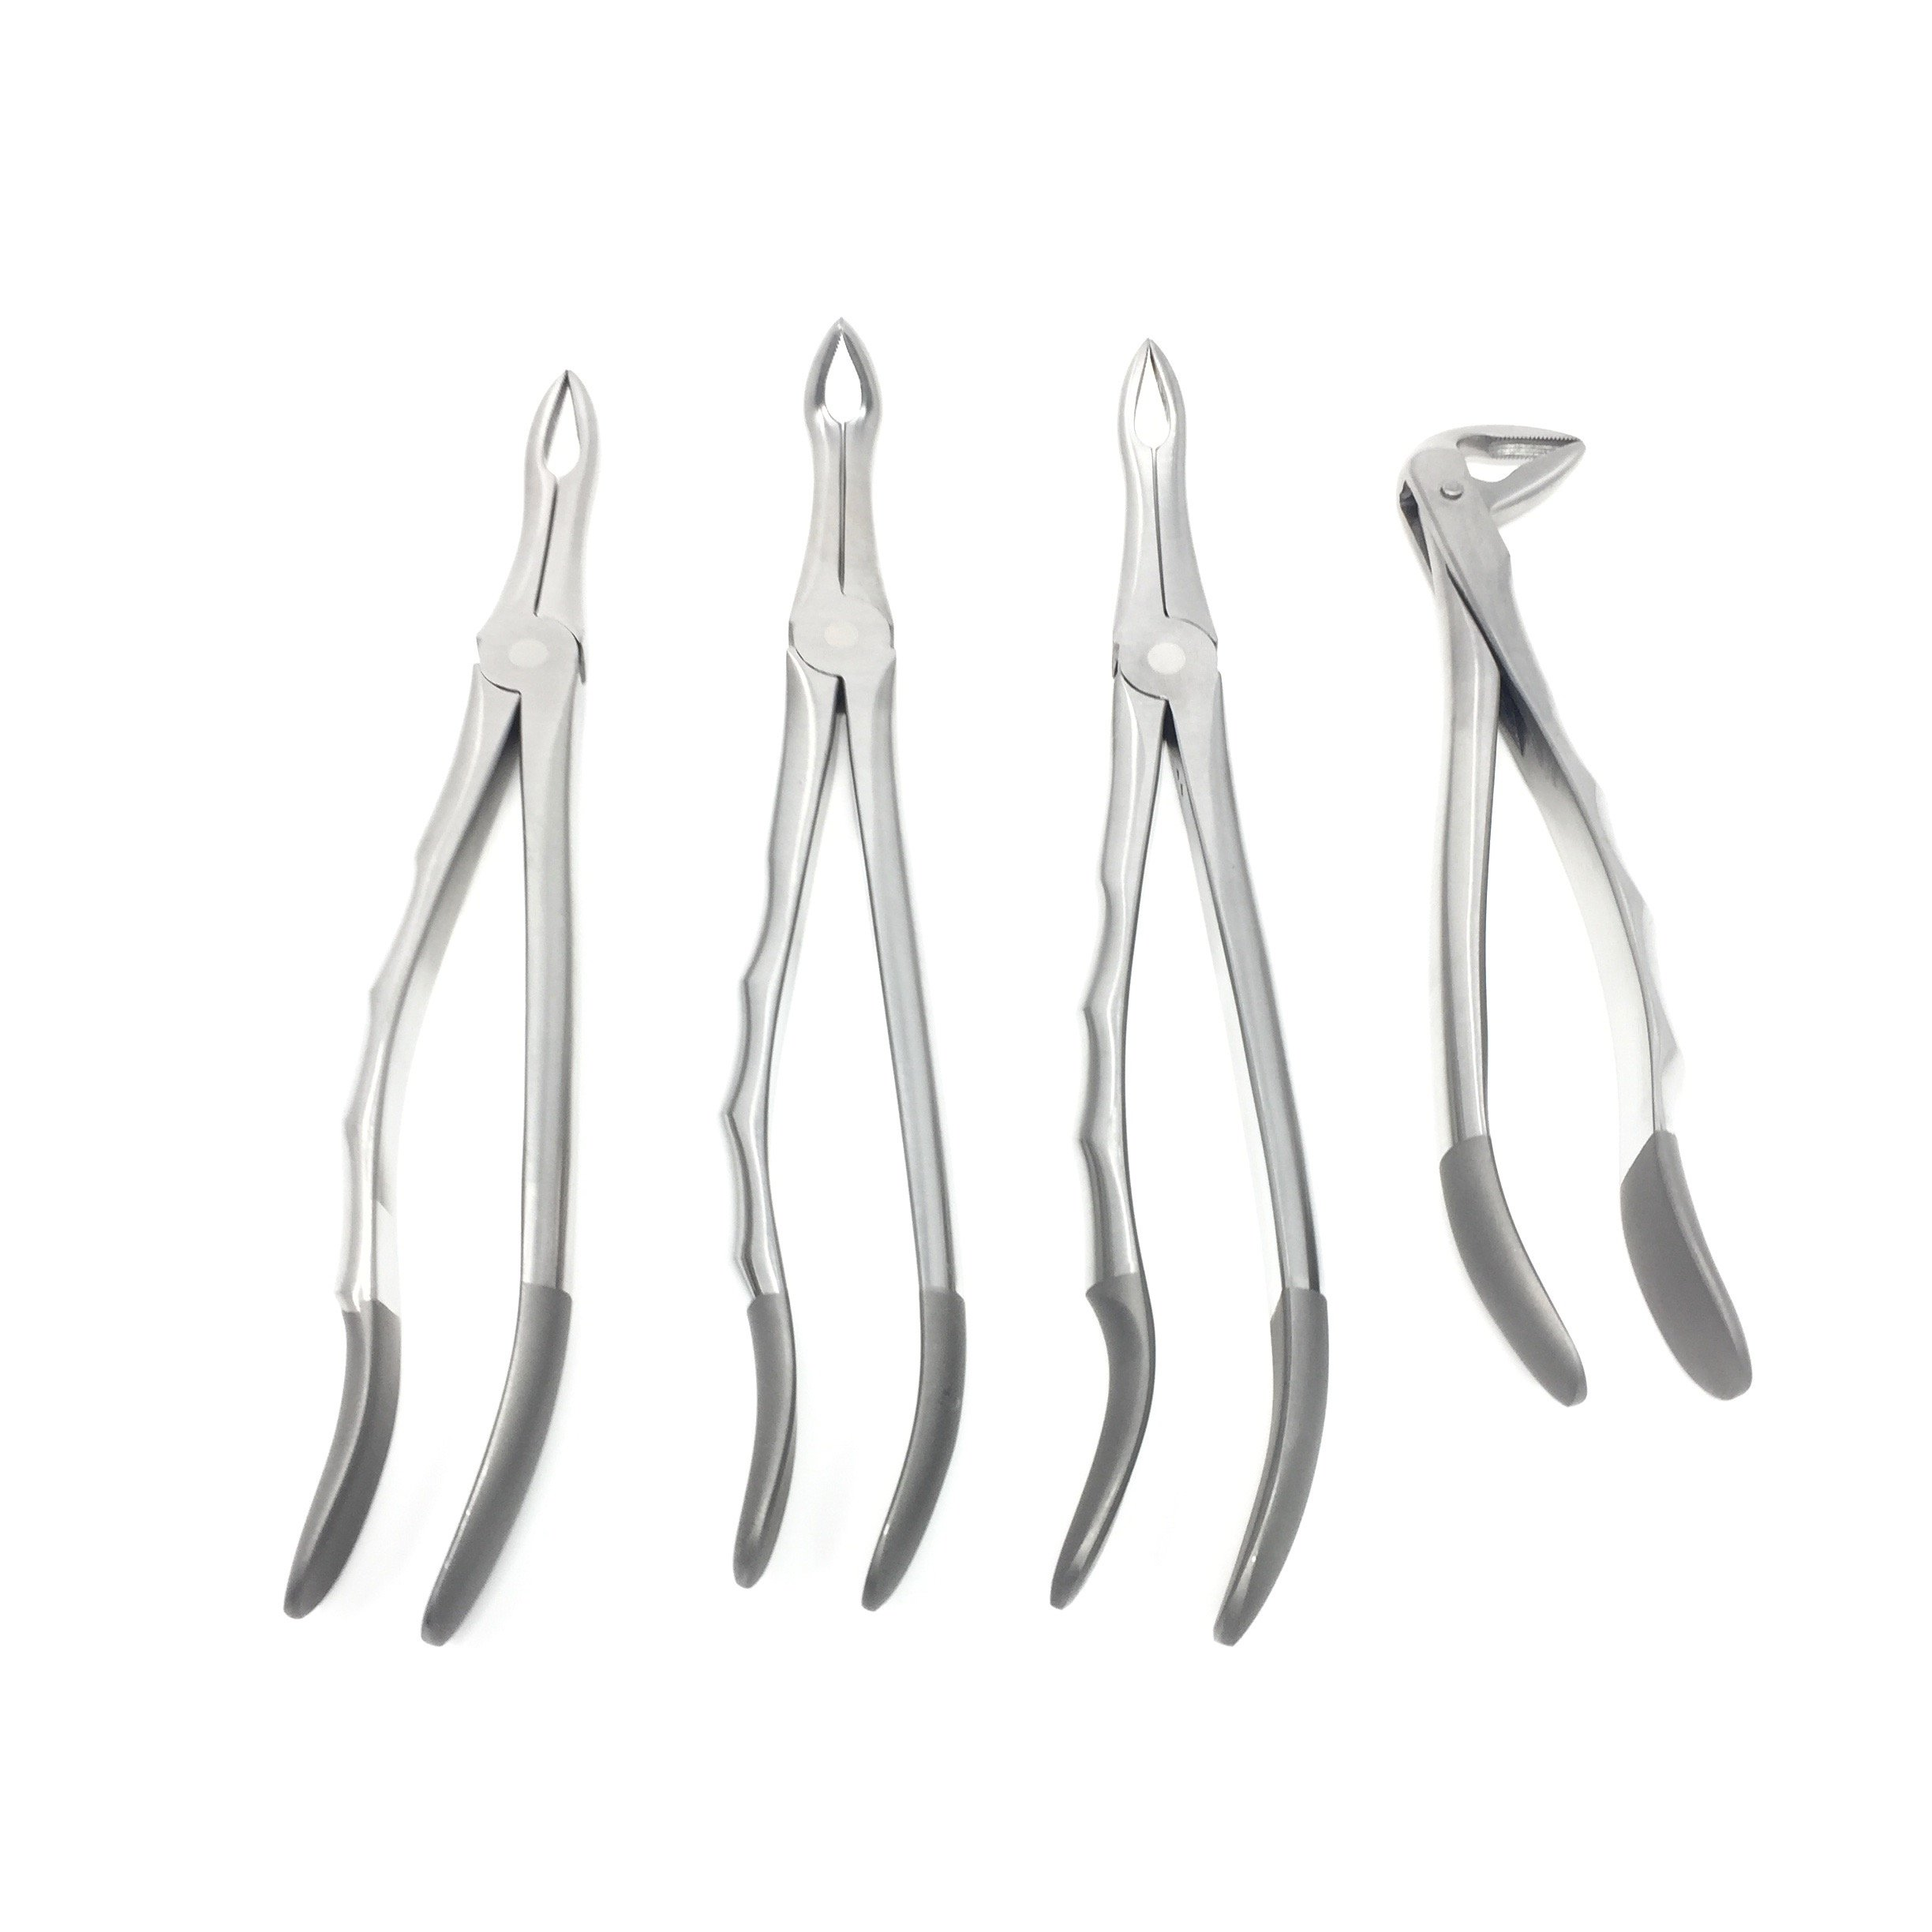 CYNAMED Dental Root Tip Extracting Forceps Set of 4 Diamond Dusted German Stainless Brand